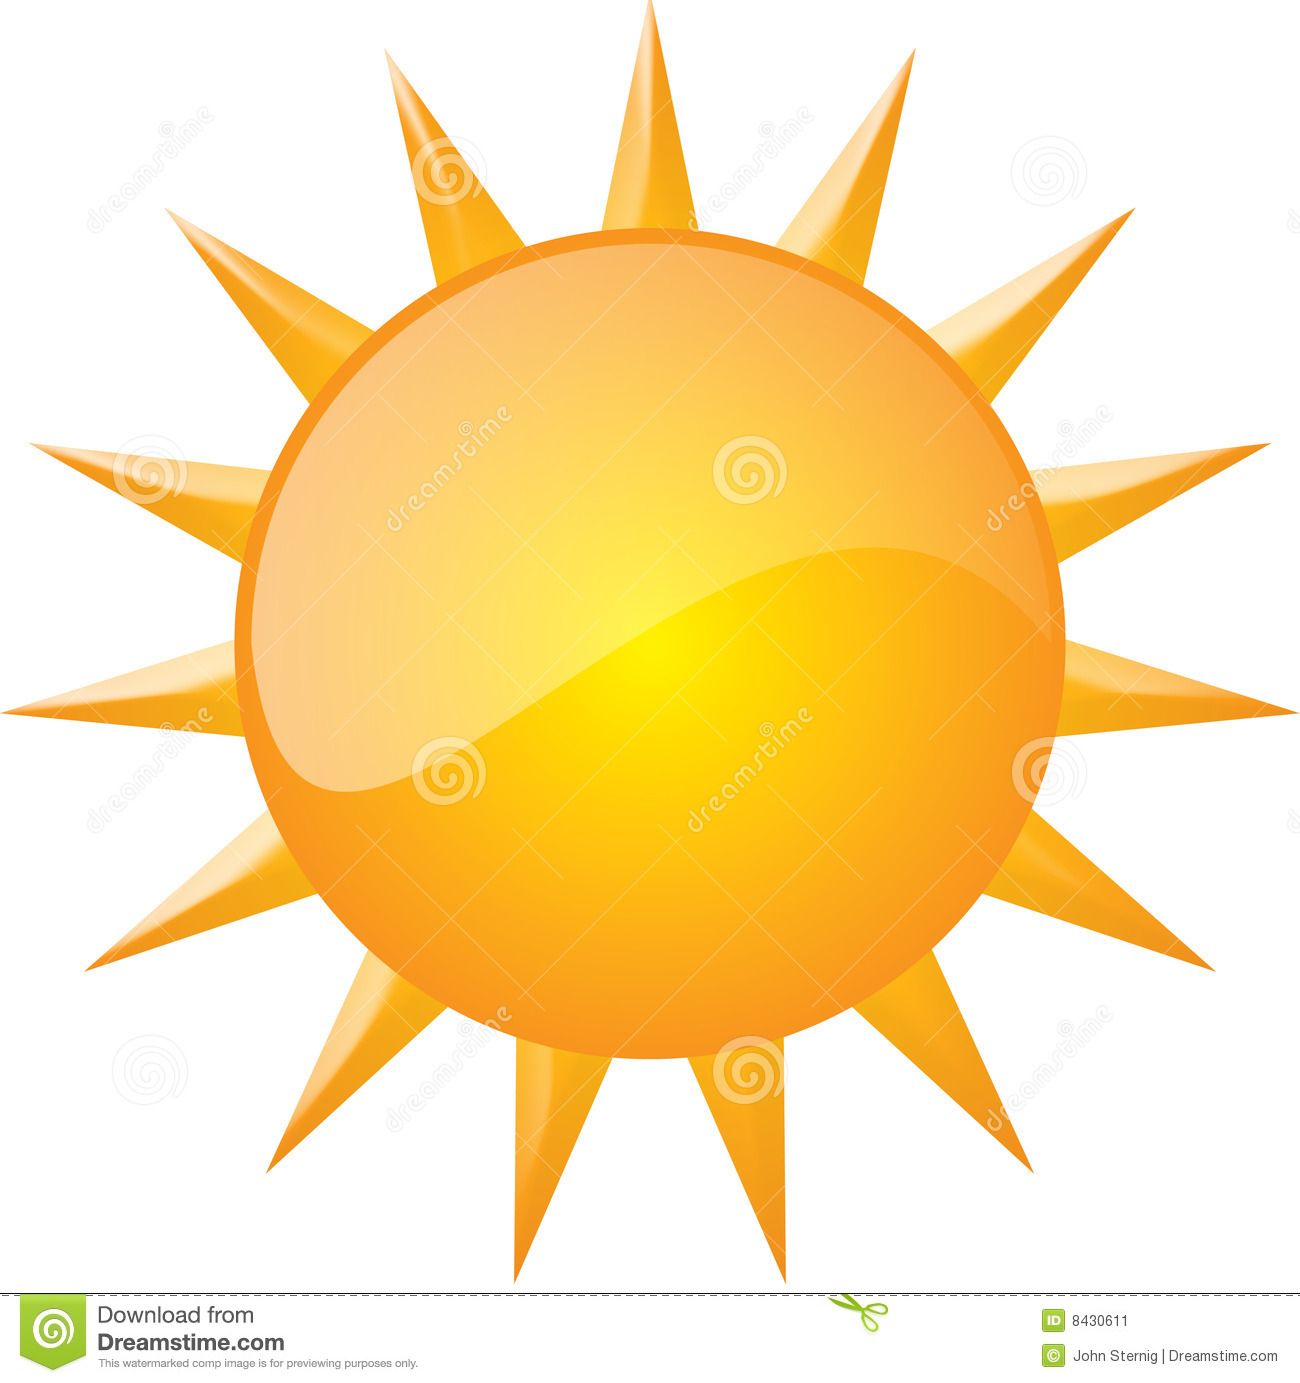 Graphic of sun (Vector Available)